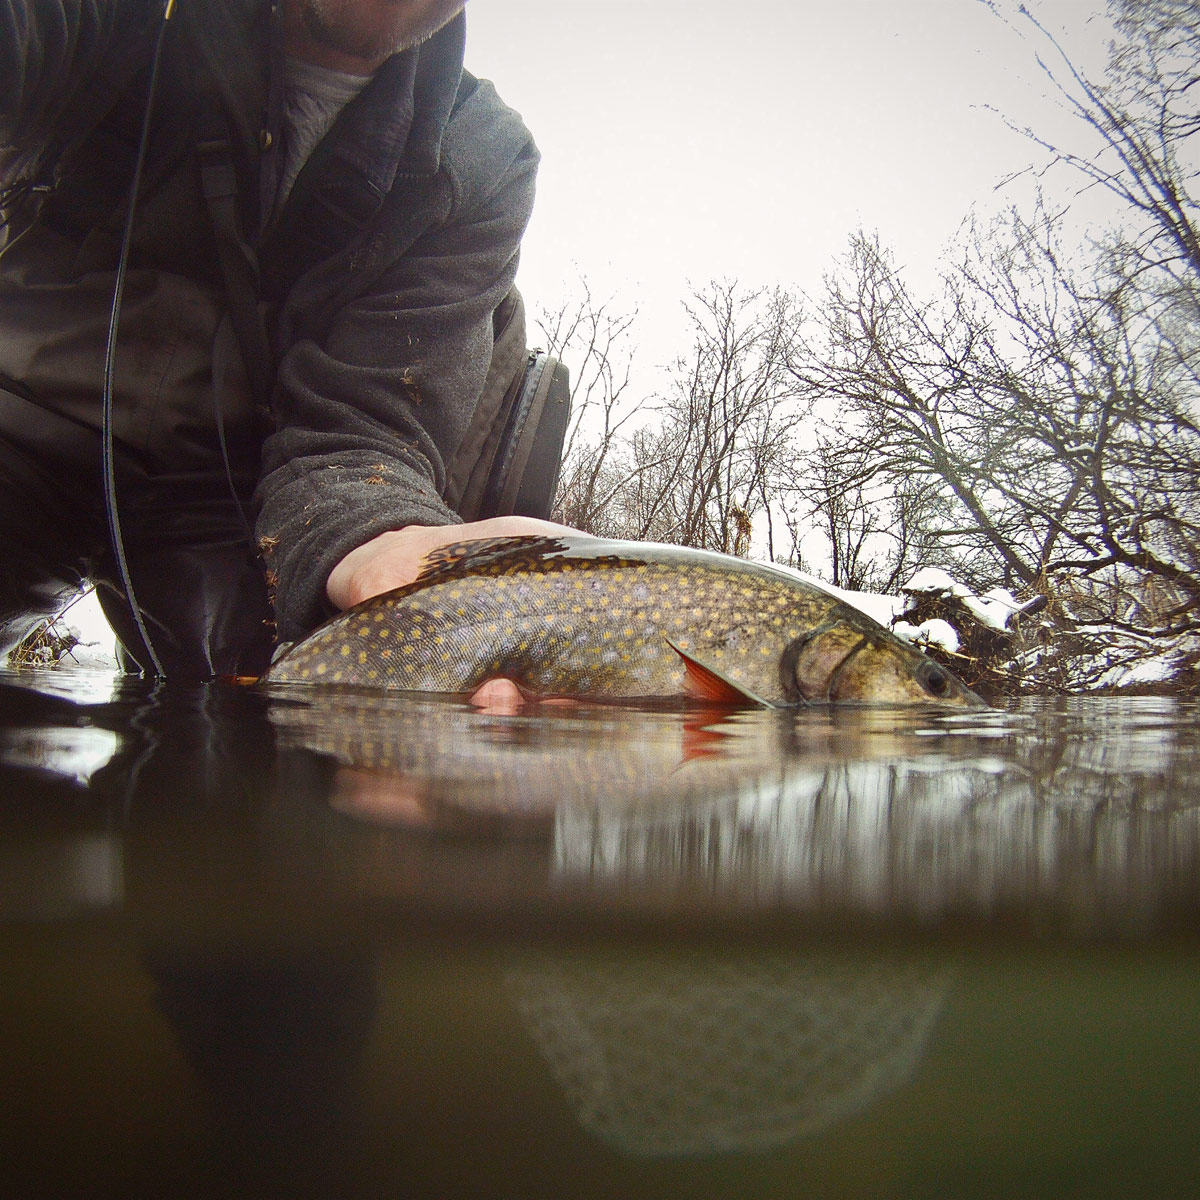 adrift_fly_fishing_labor_graphic_design_minneapolis_andy_weaverling_driftless_trout_winter_05